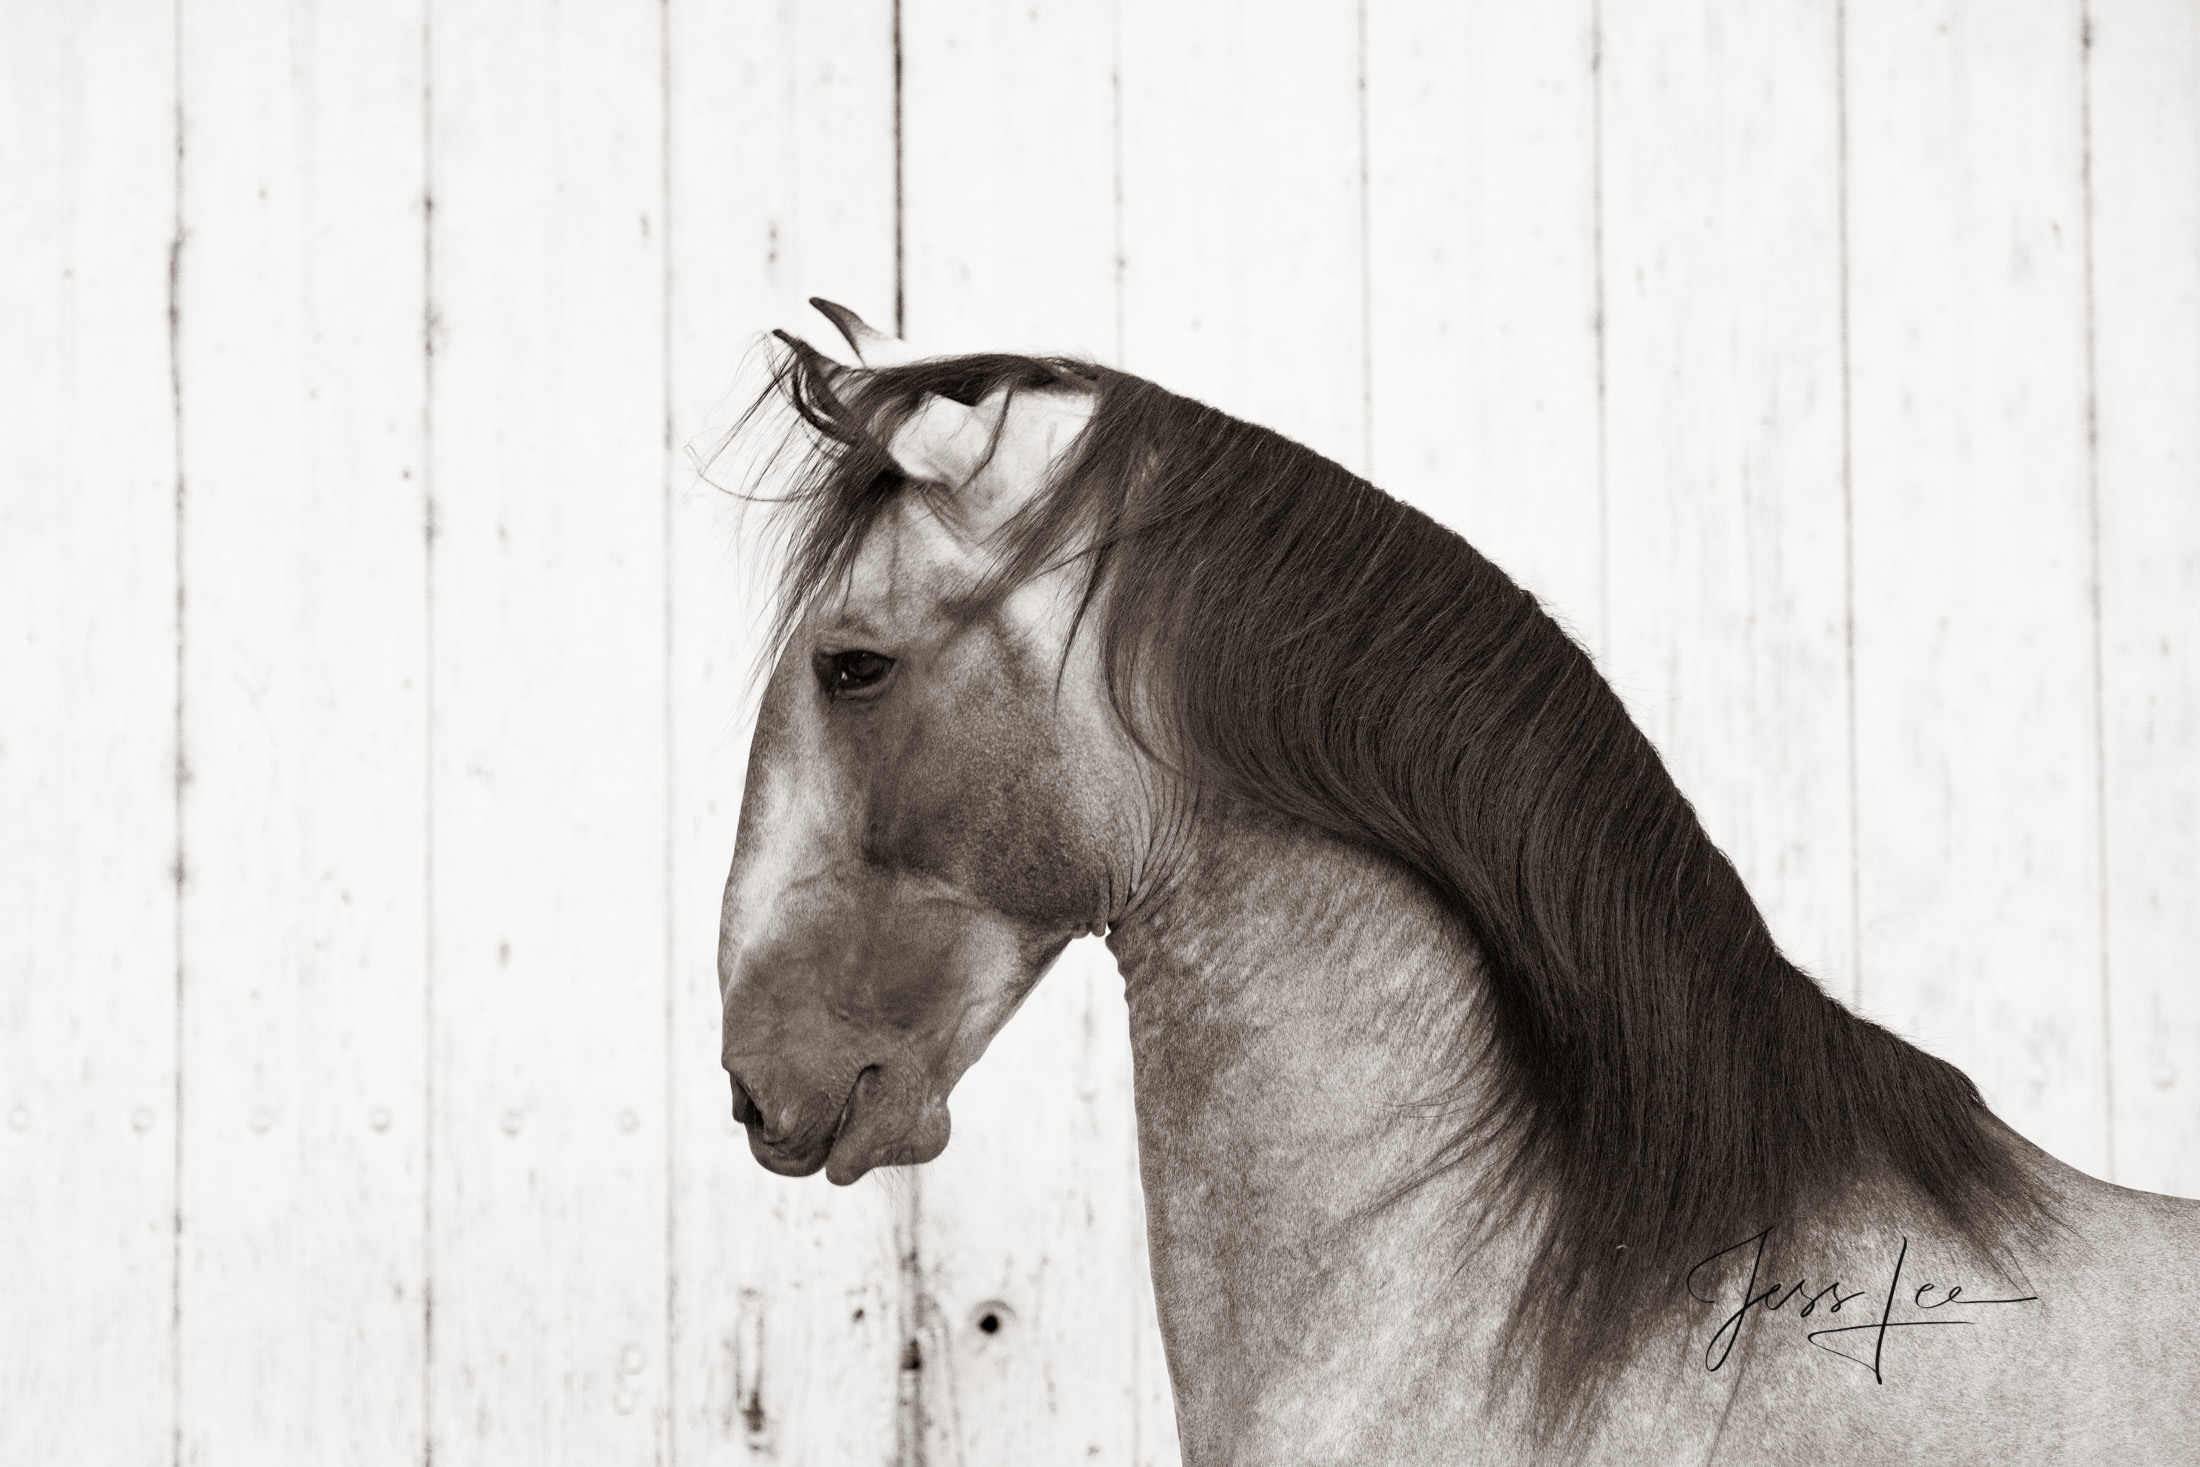 Camargue # 5 Fine Art, Limited Edition, Luxurious photographic prints of the horses of the Camargue and Provence region of France...